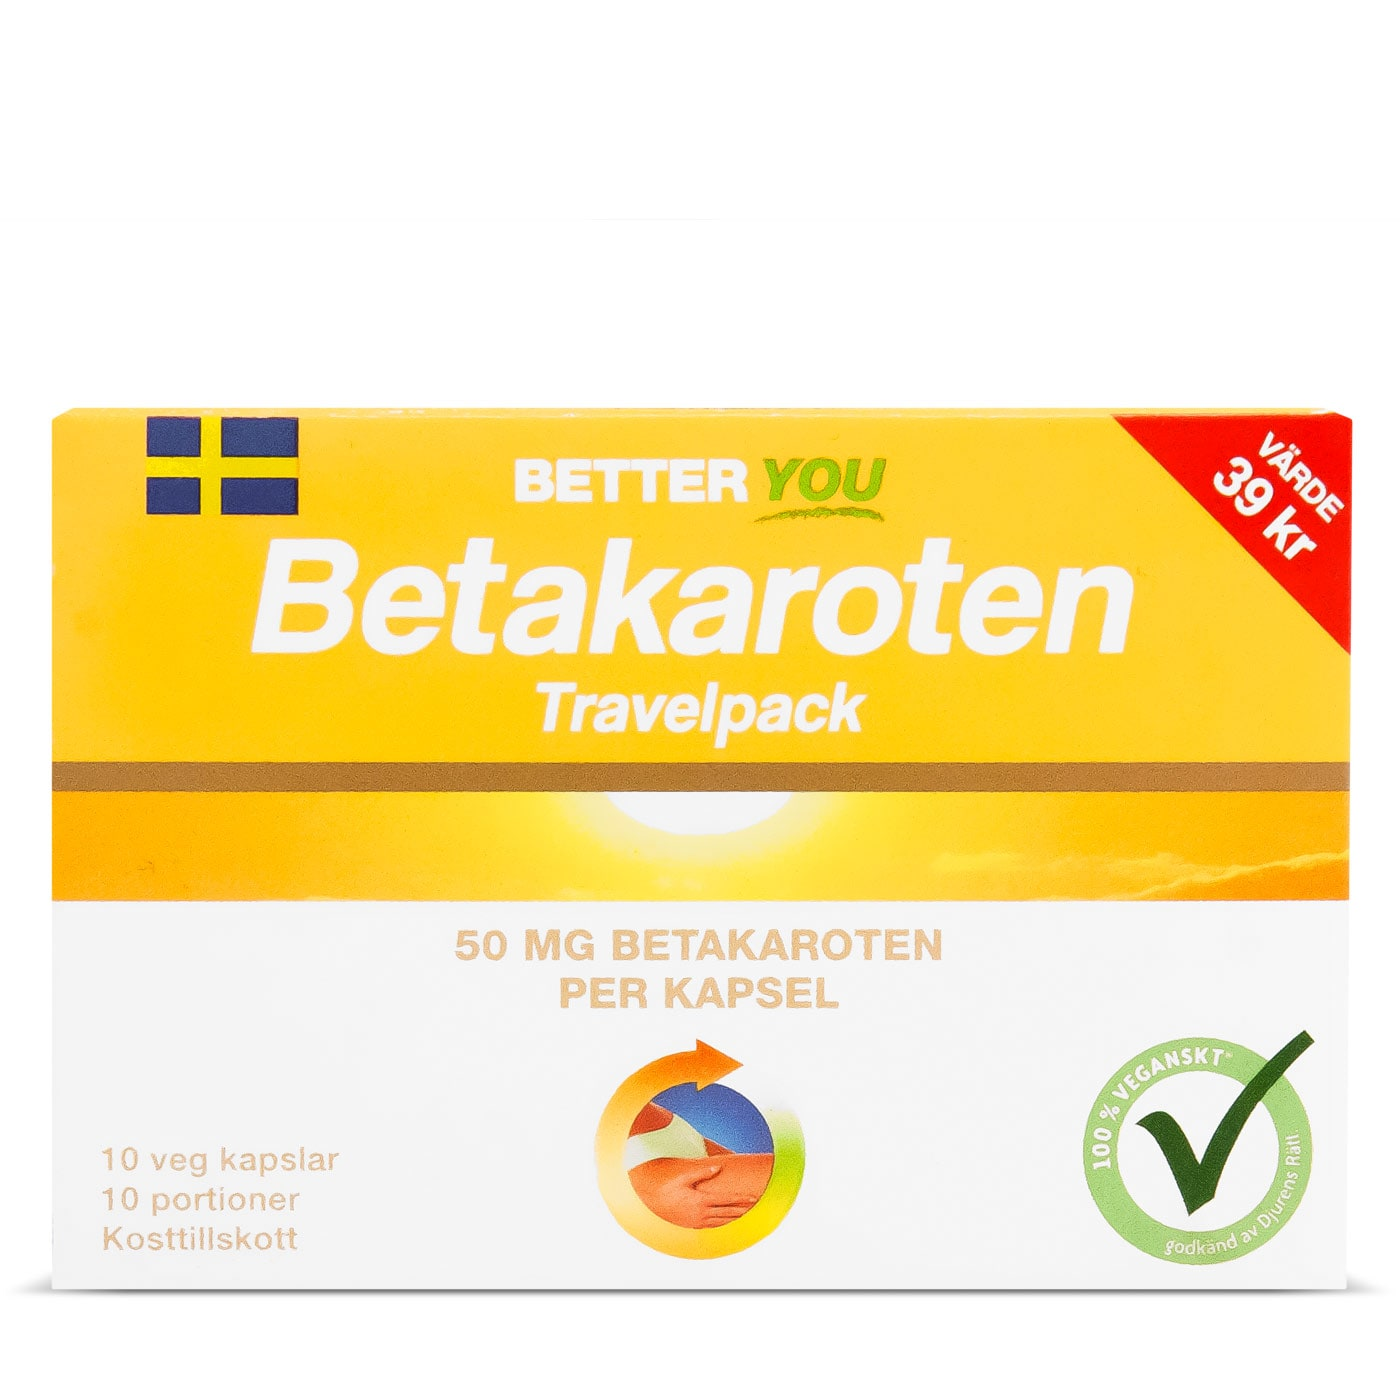 Betakaroten 50 mg - Travelpack